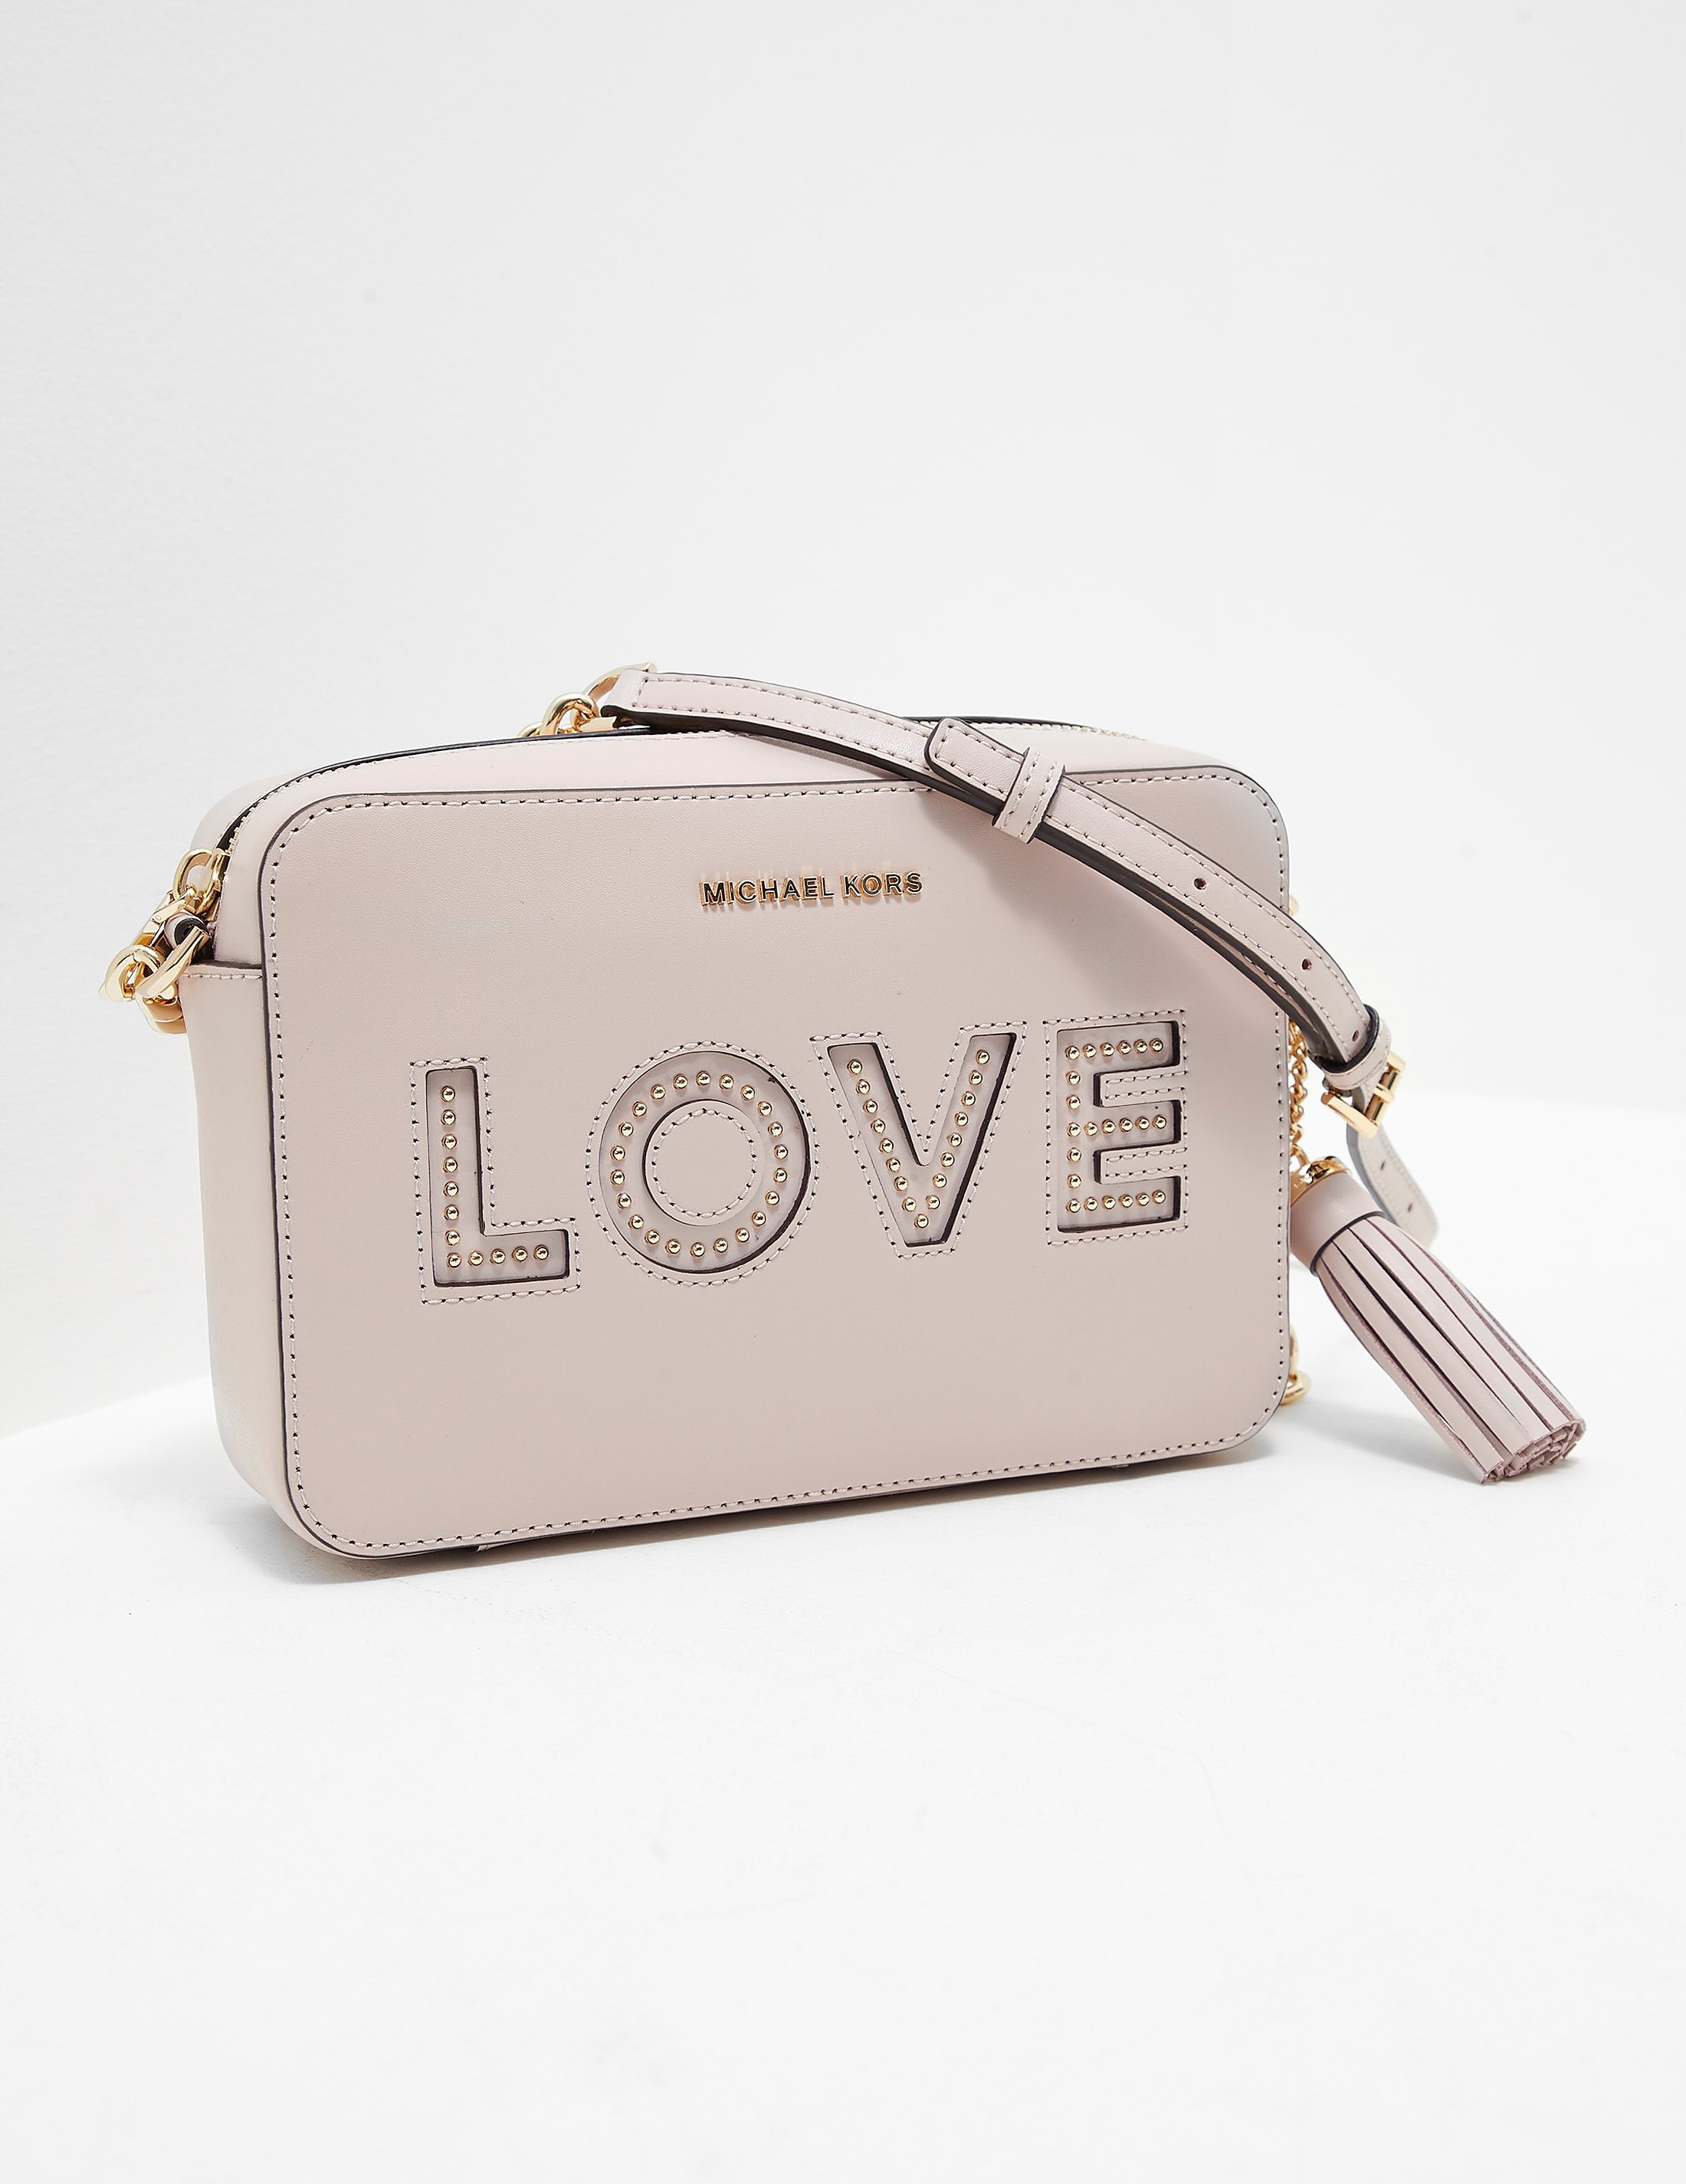 Michael Kors Ginny Love Camera Bag